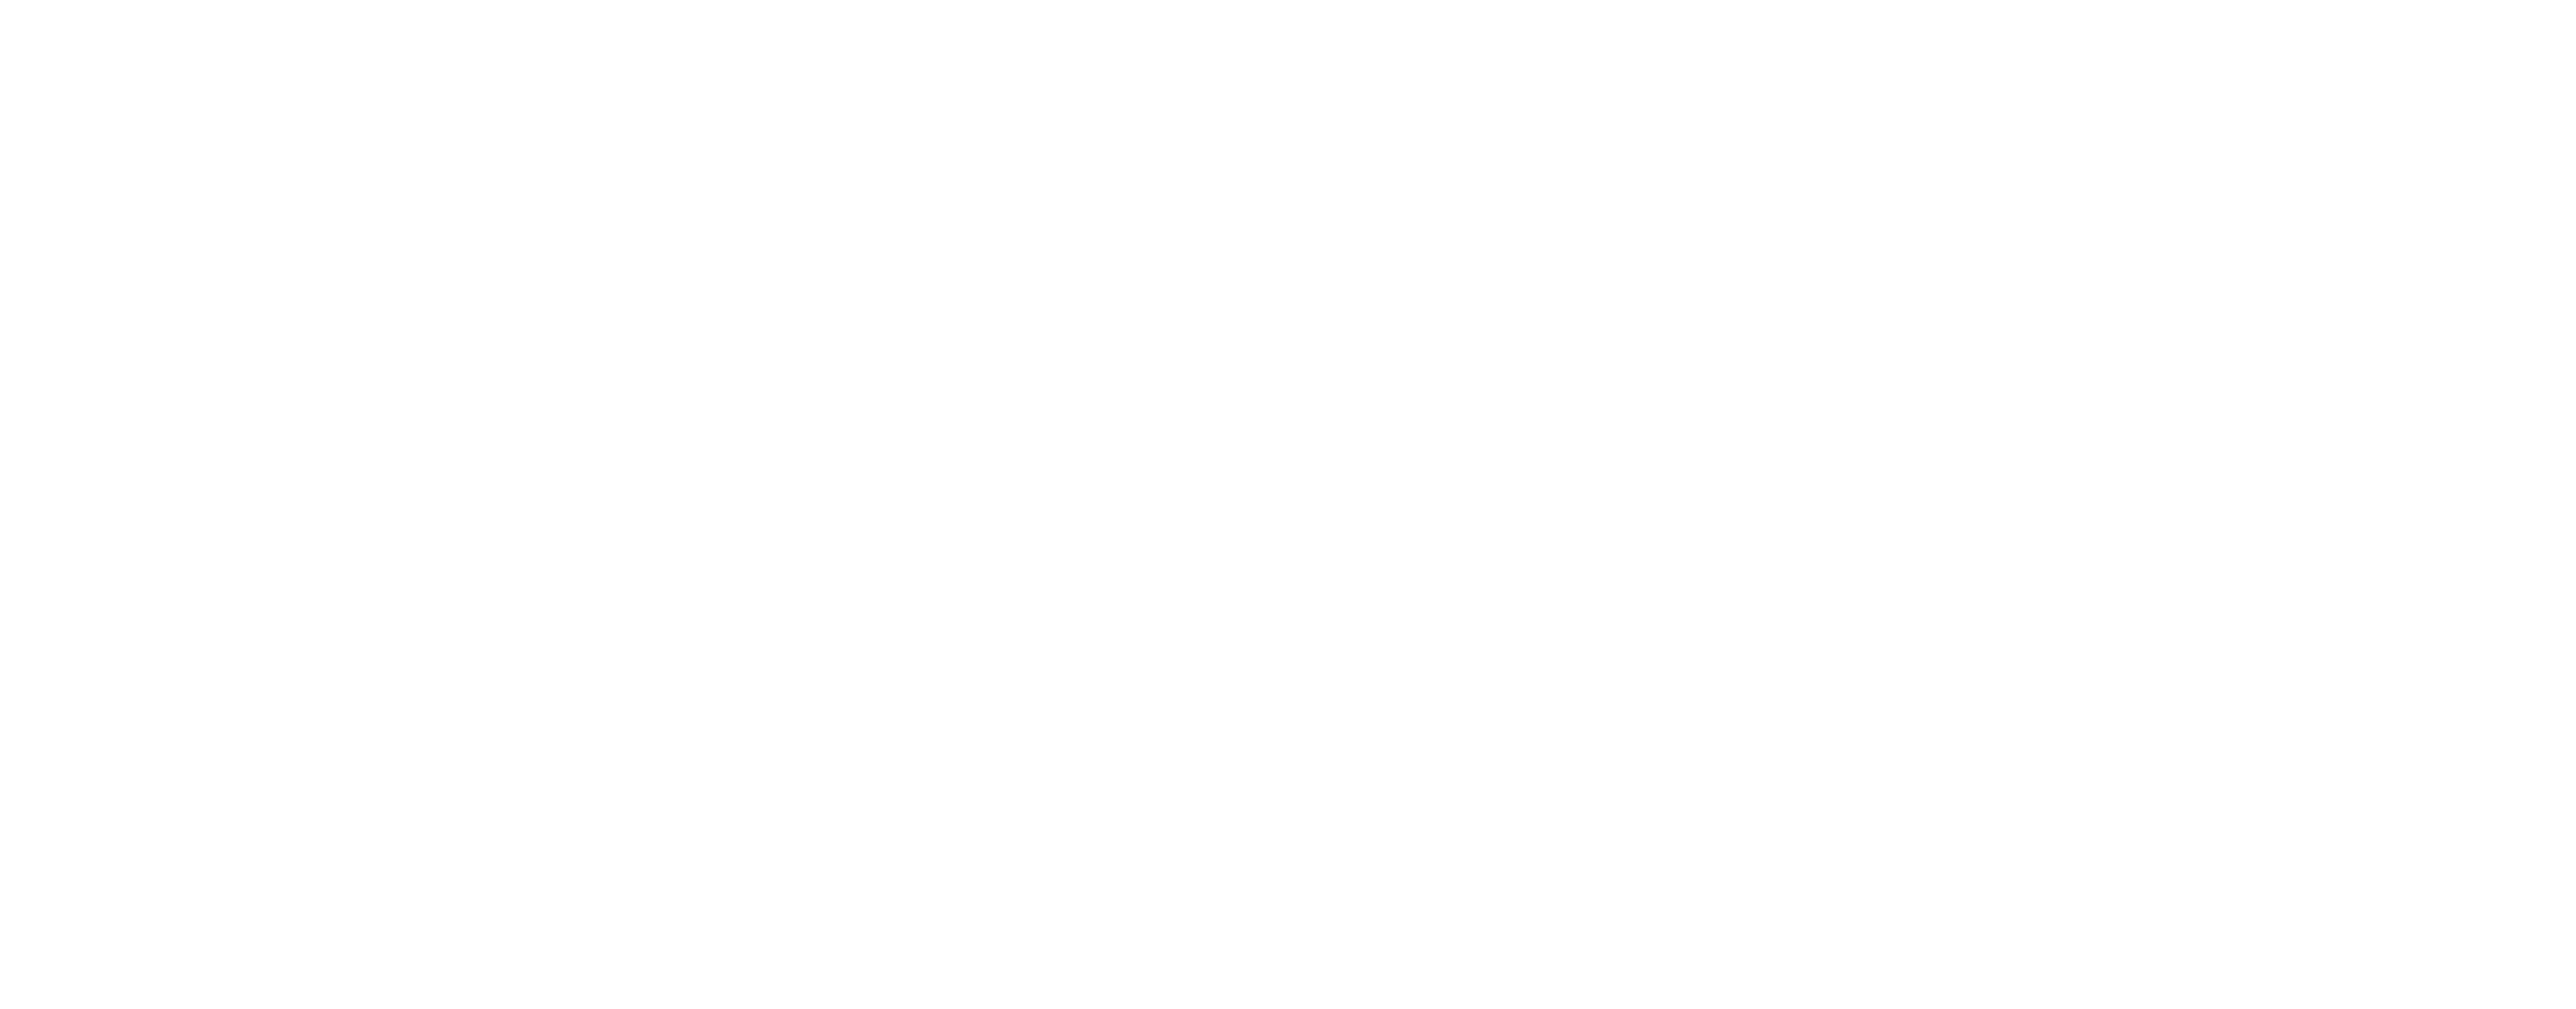 crown couture logo